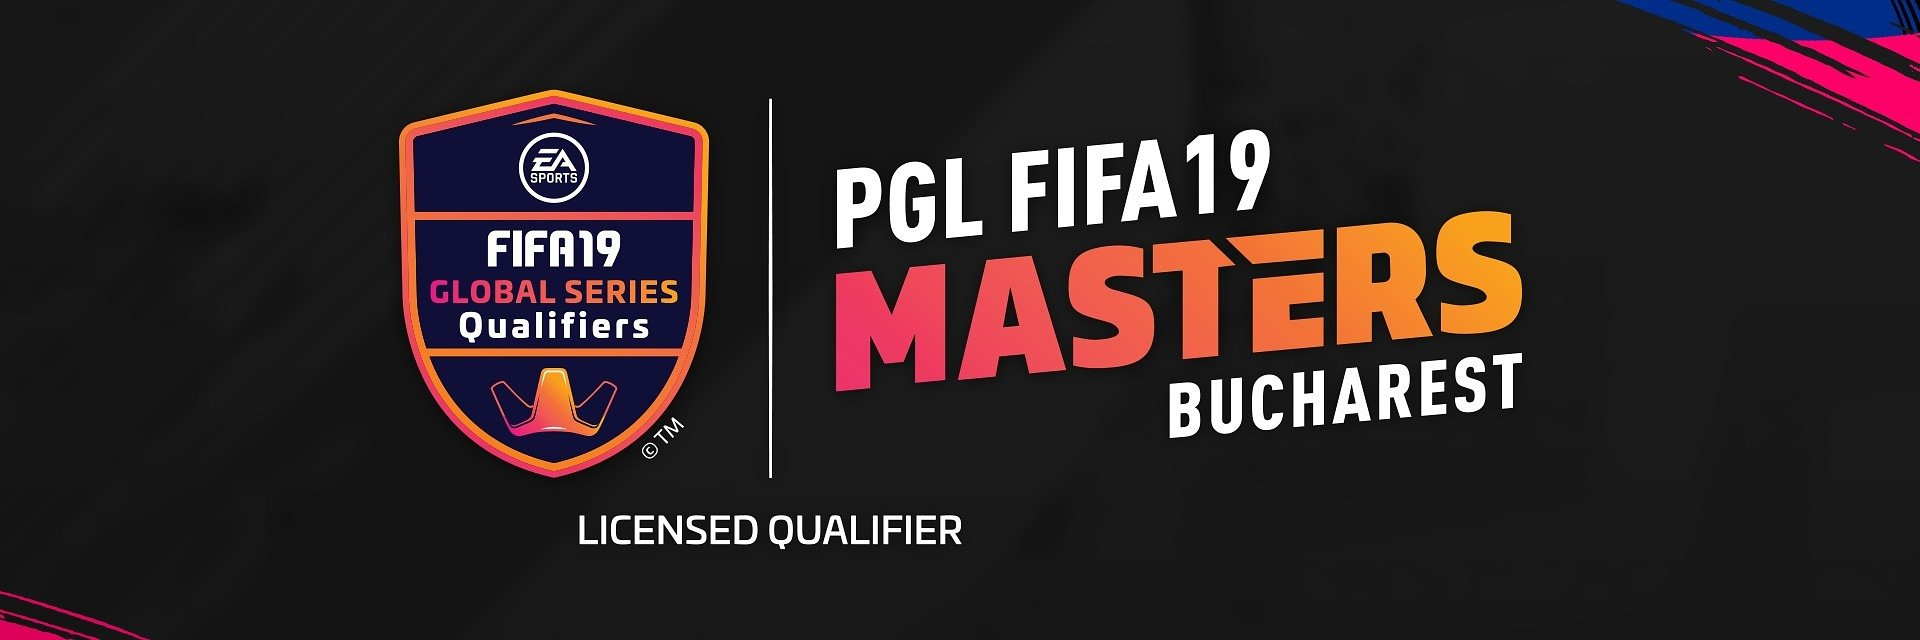 PGL will stream every match of PGL FIFA 19 Masters Bucharest